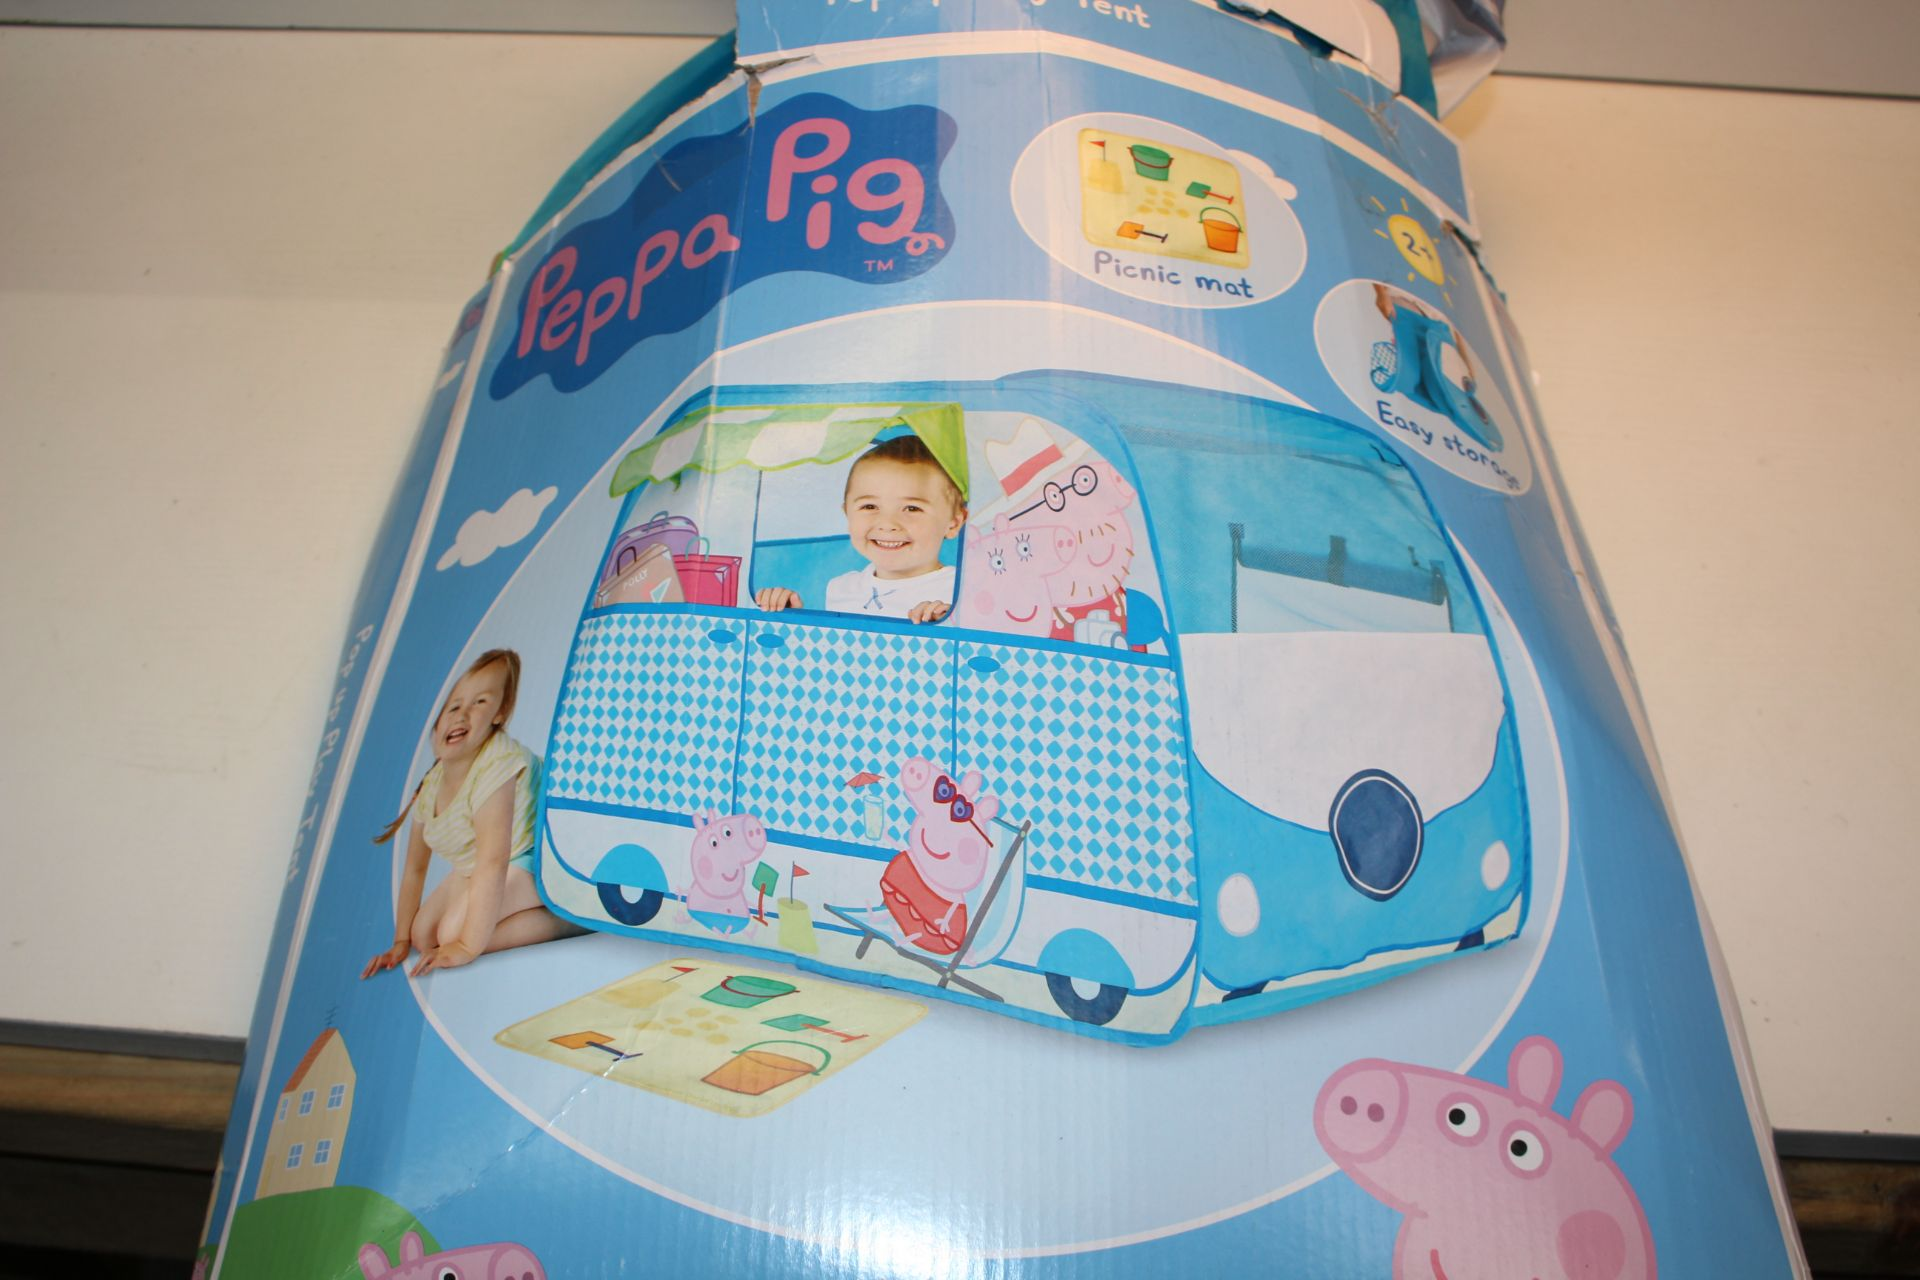 BOXED PEPPA PIG PLAY TENT Condition ReportAppraisal Available on Request- All Items are Unchecked/